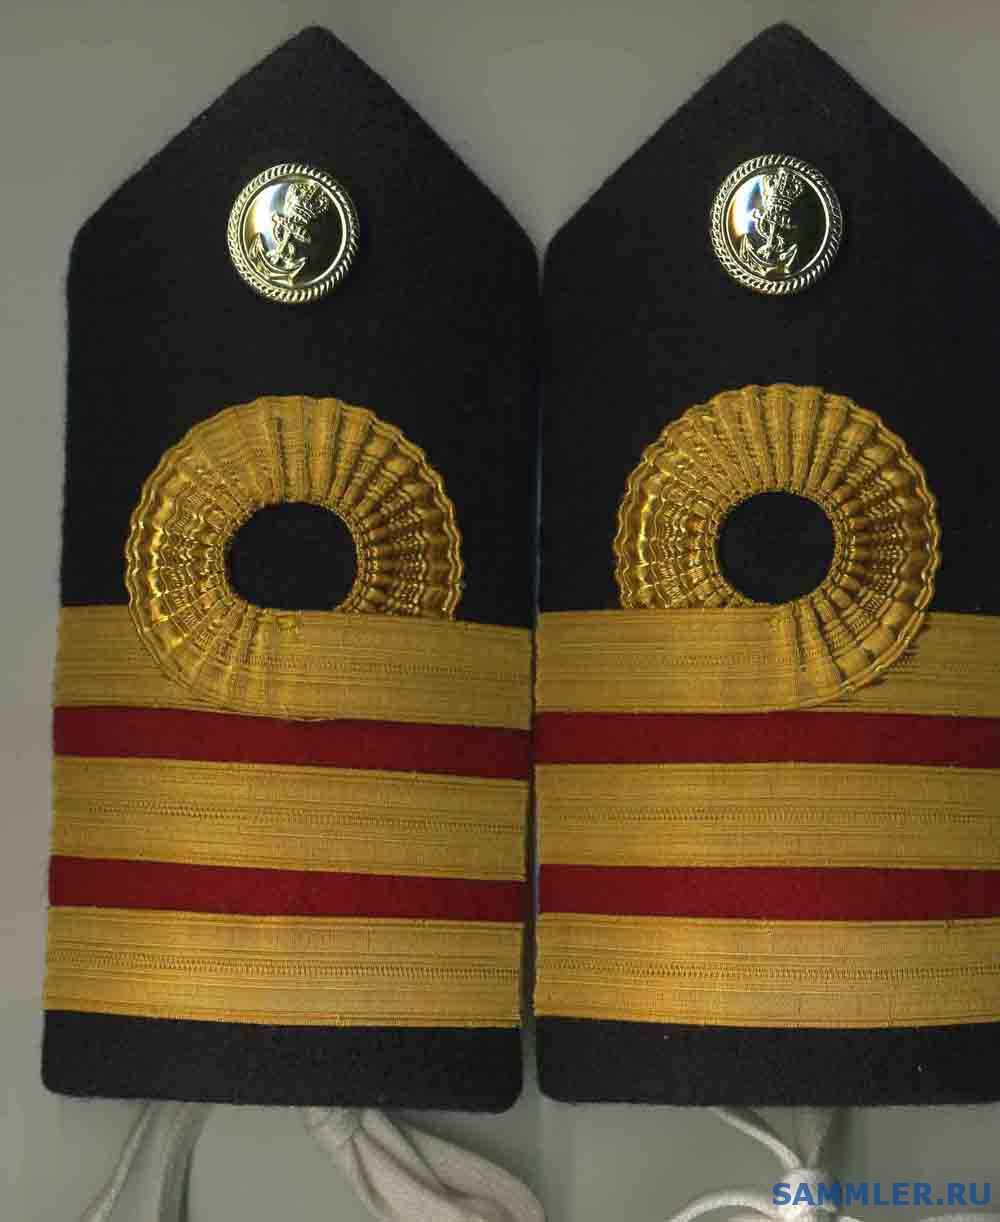 ROYAL_NAVY_OFFICERS_RANK_EPAULETTES___SURGEON_COMMANDER.jpg